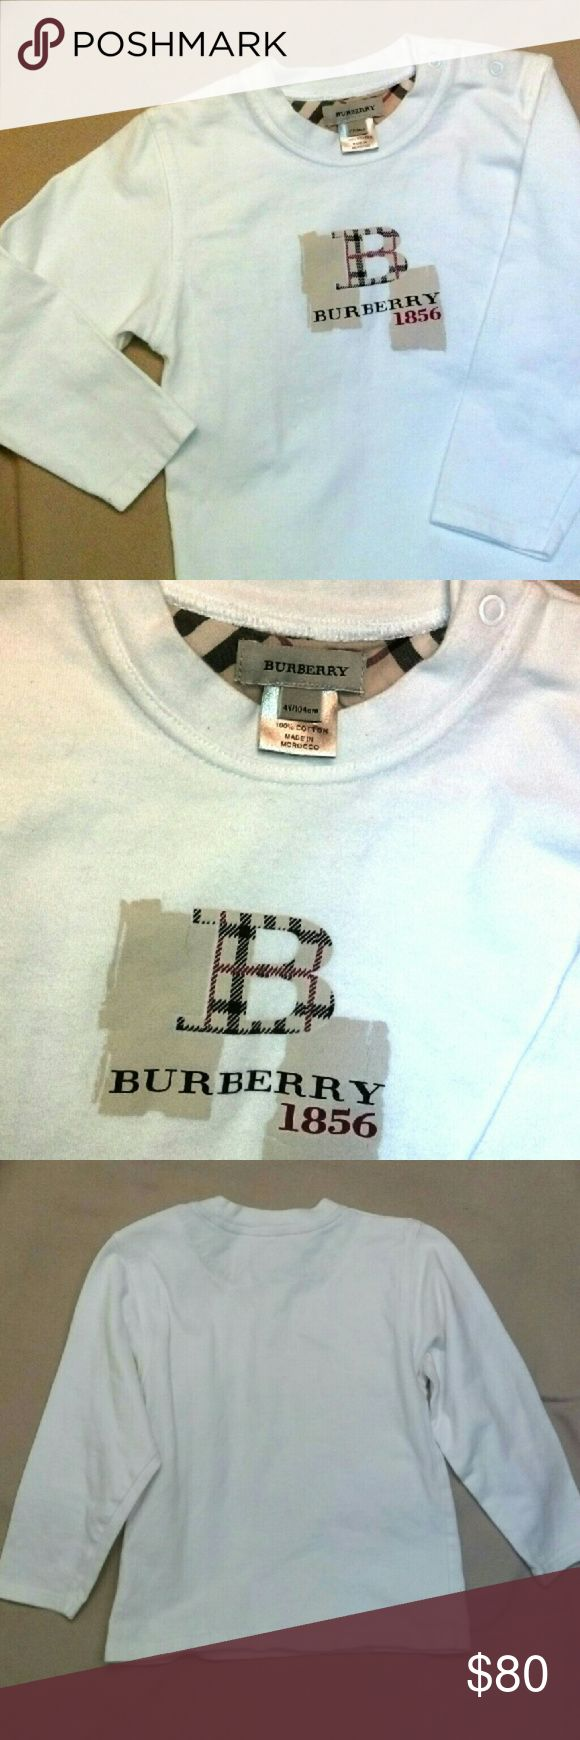 🚸Burberry Toddler Warm Shirt, Size: 4T, UNISEX🚸 Toddler, Kids, 100% Cotton. Brand: Burberry Size: 4 Years, 104cm. Made in: Morocco. 2 Snaps on Left Neck/Shoulder. Good Condition. ?? View Pictures of this Shirt. ?? Burberry Shirts & Tops Tees - Long Sleeve